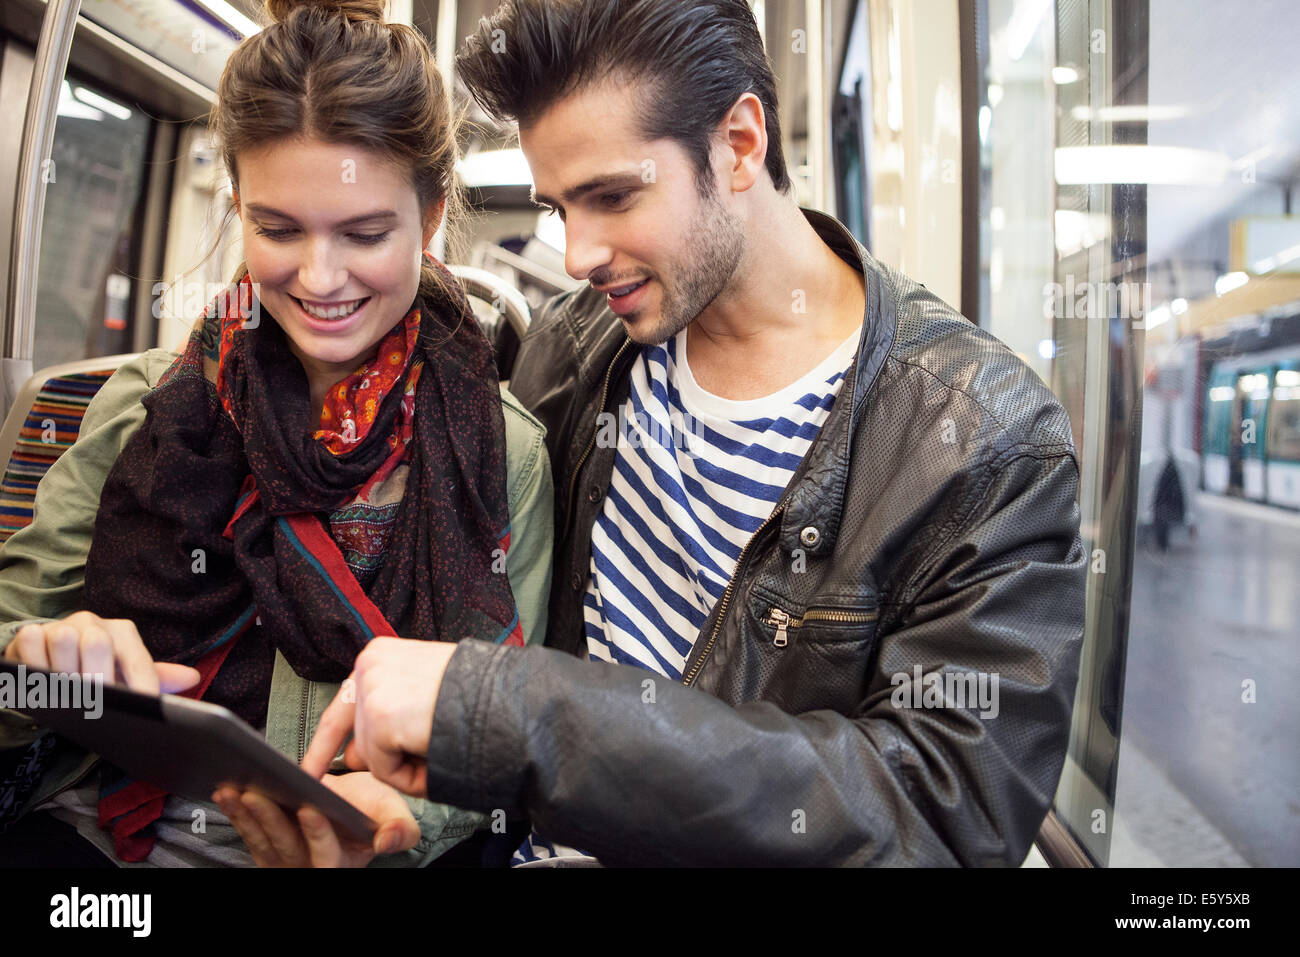 Young couple riding subway looking at digital tablet together - Stock Image